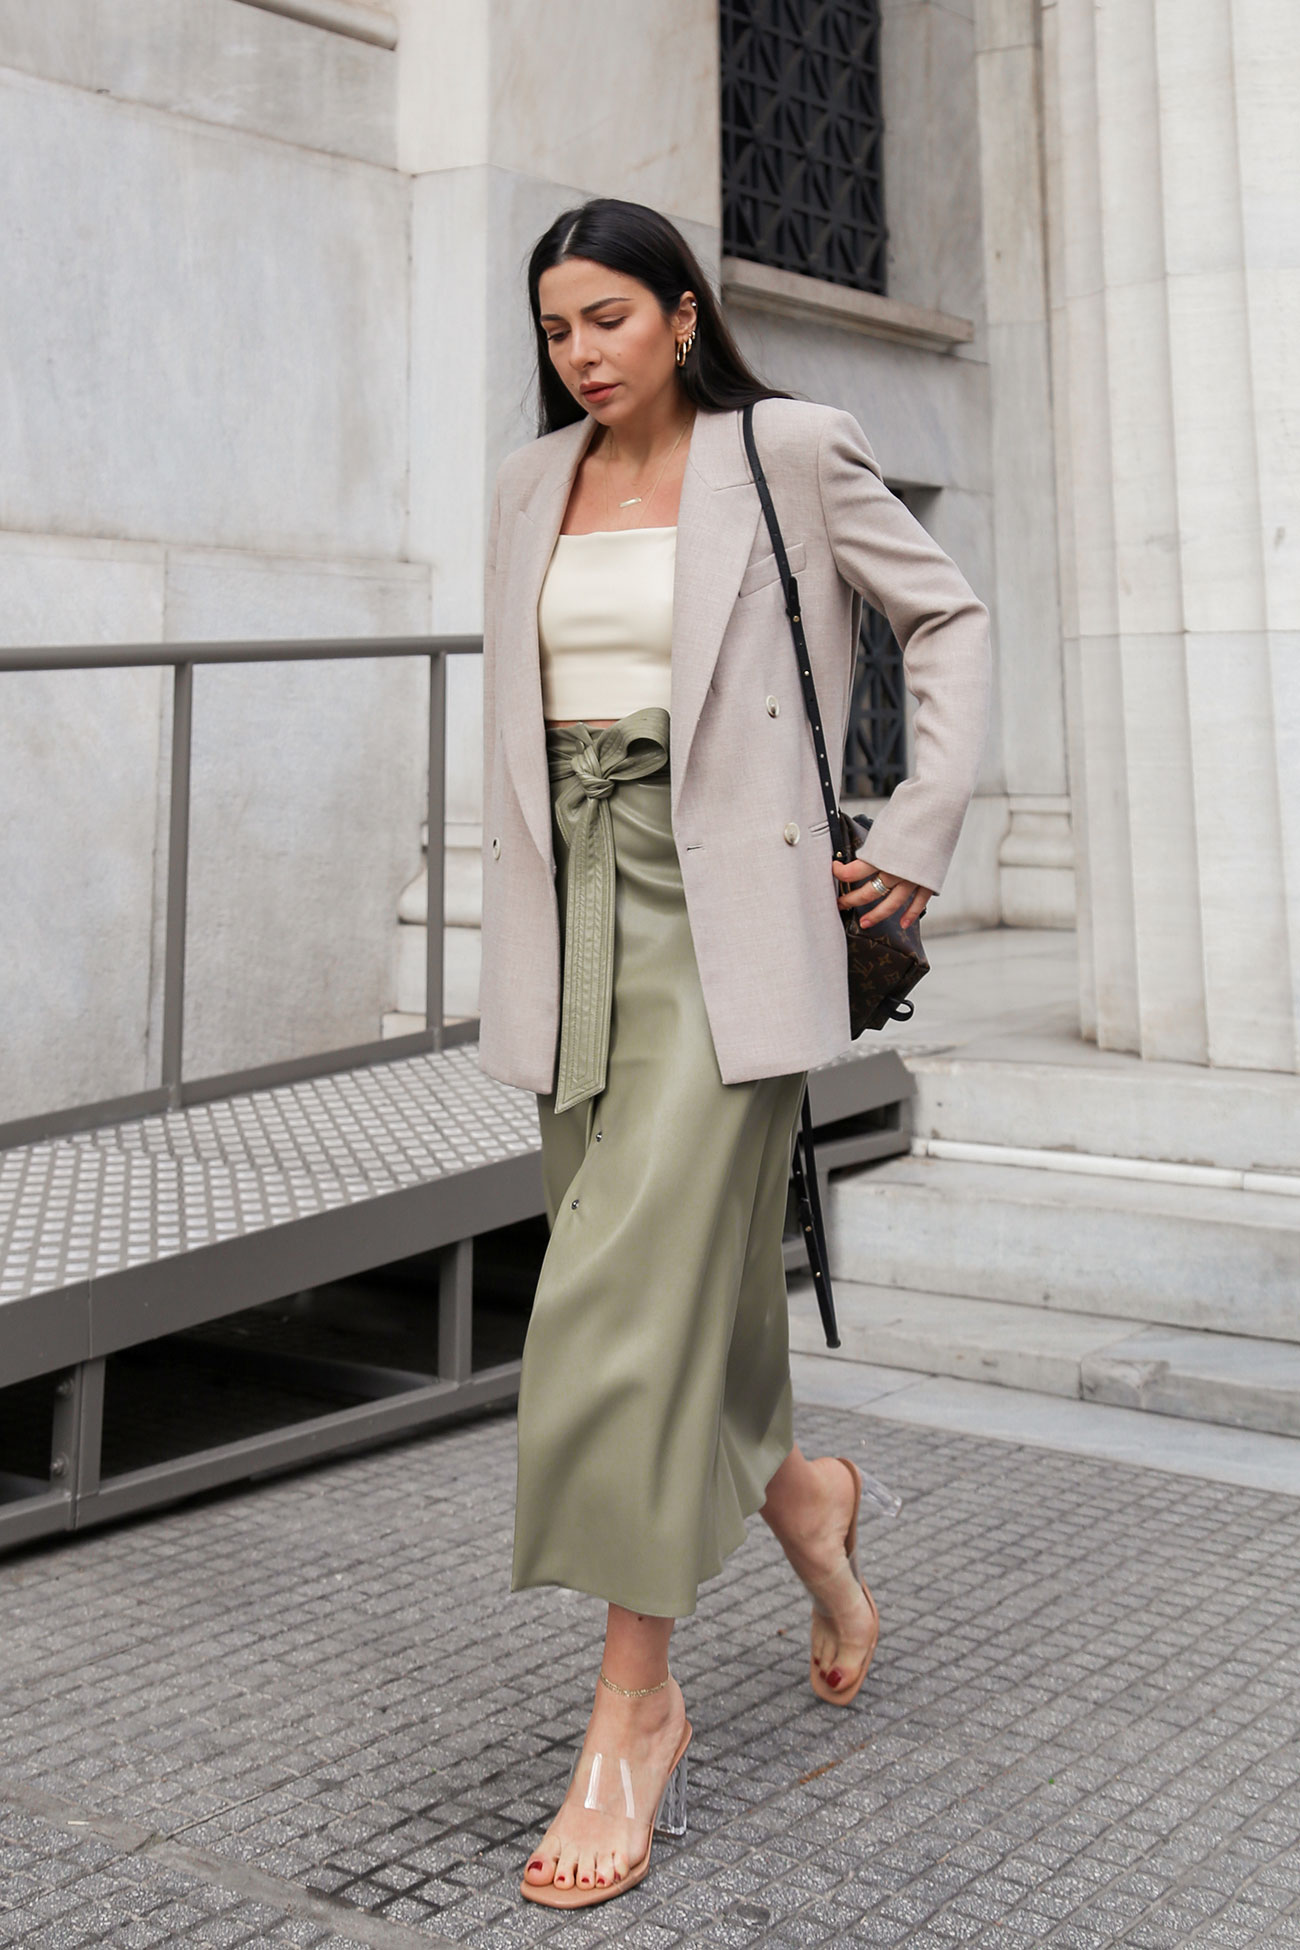 How to style a faux leather skirt - 2 ways on how to wear a (faux) leather skirt for spring summer by Stella Asteria